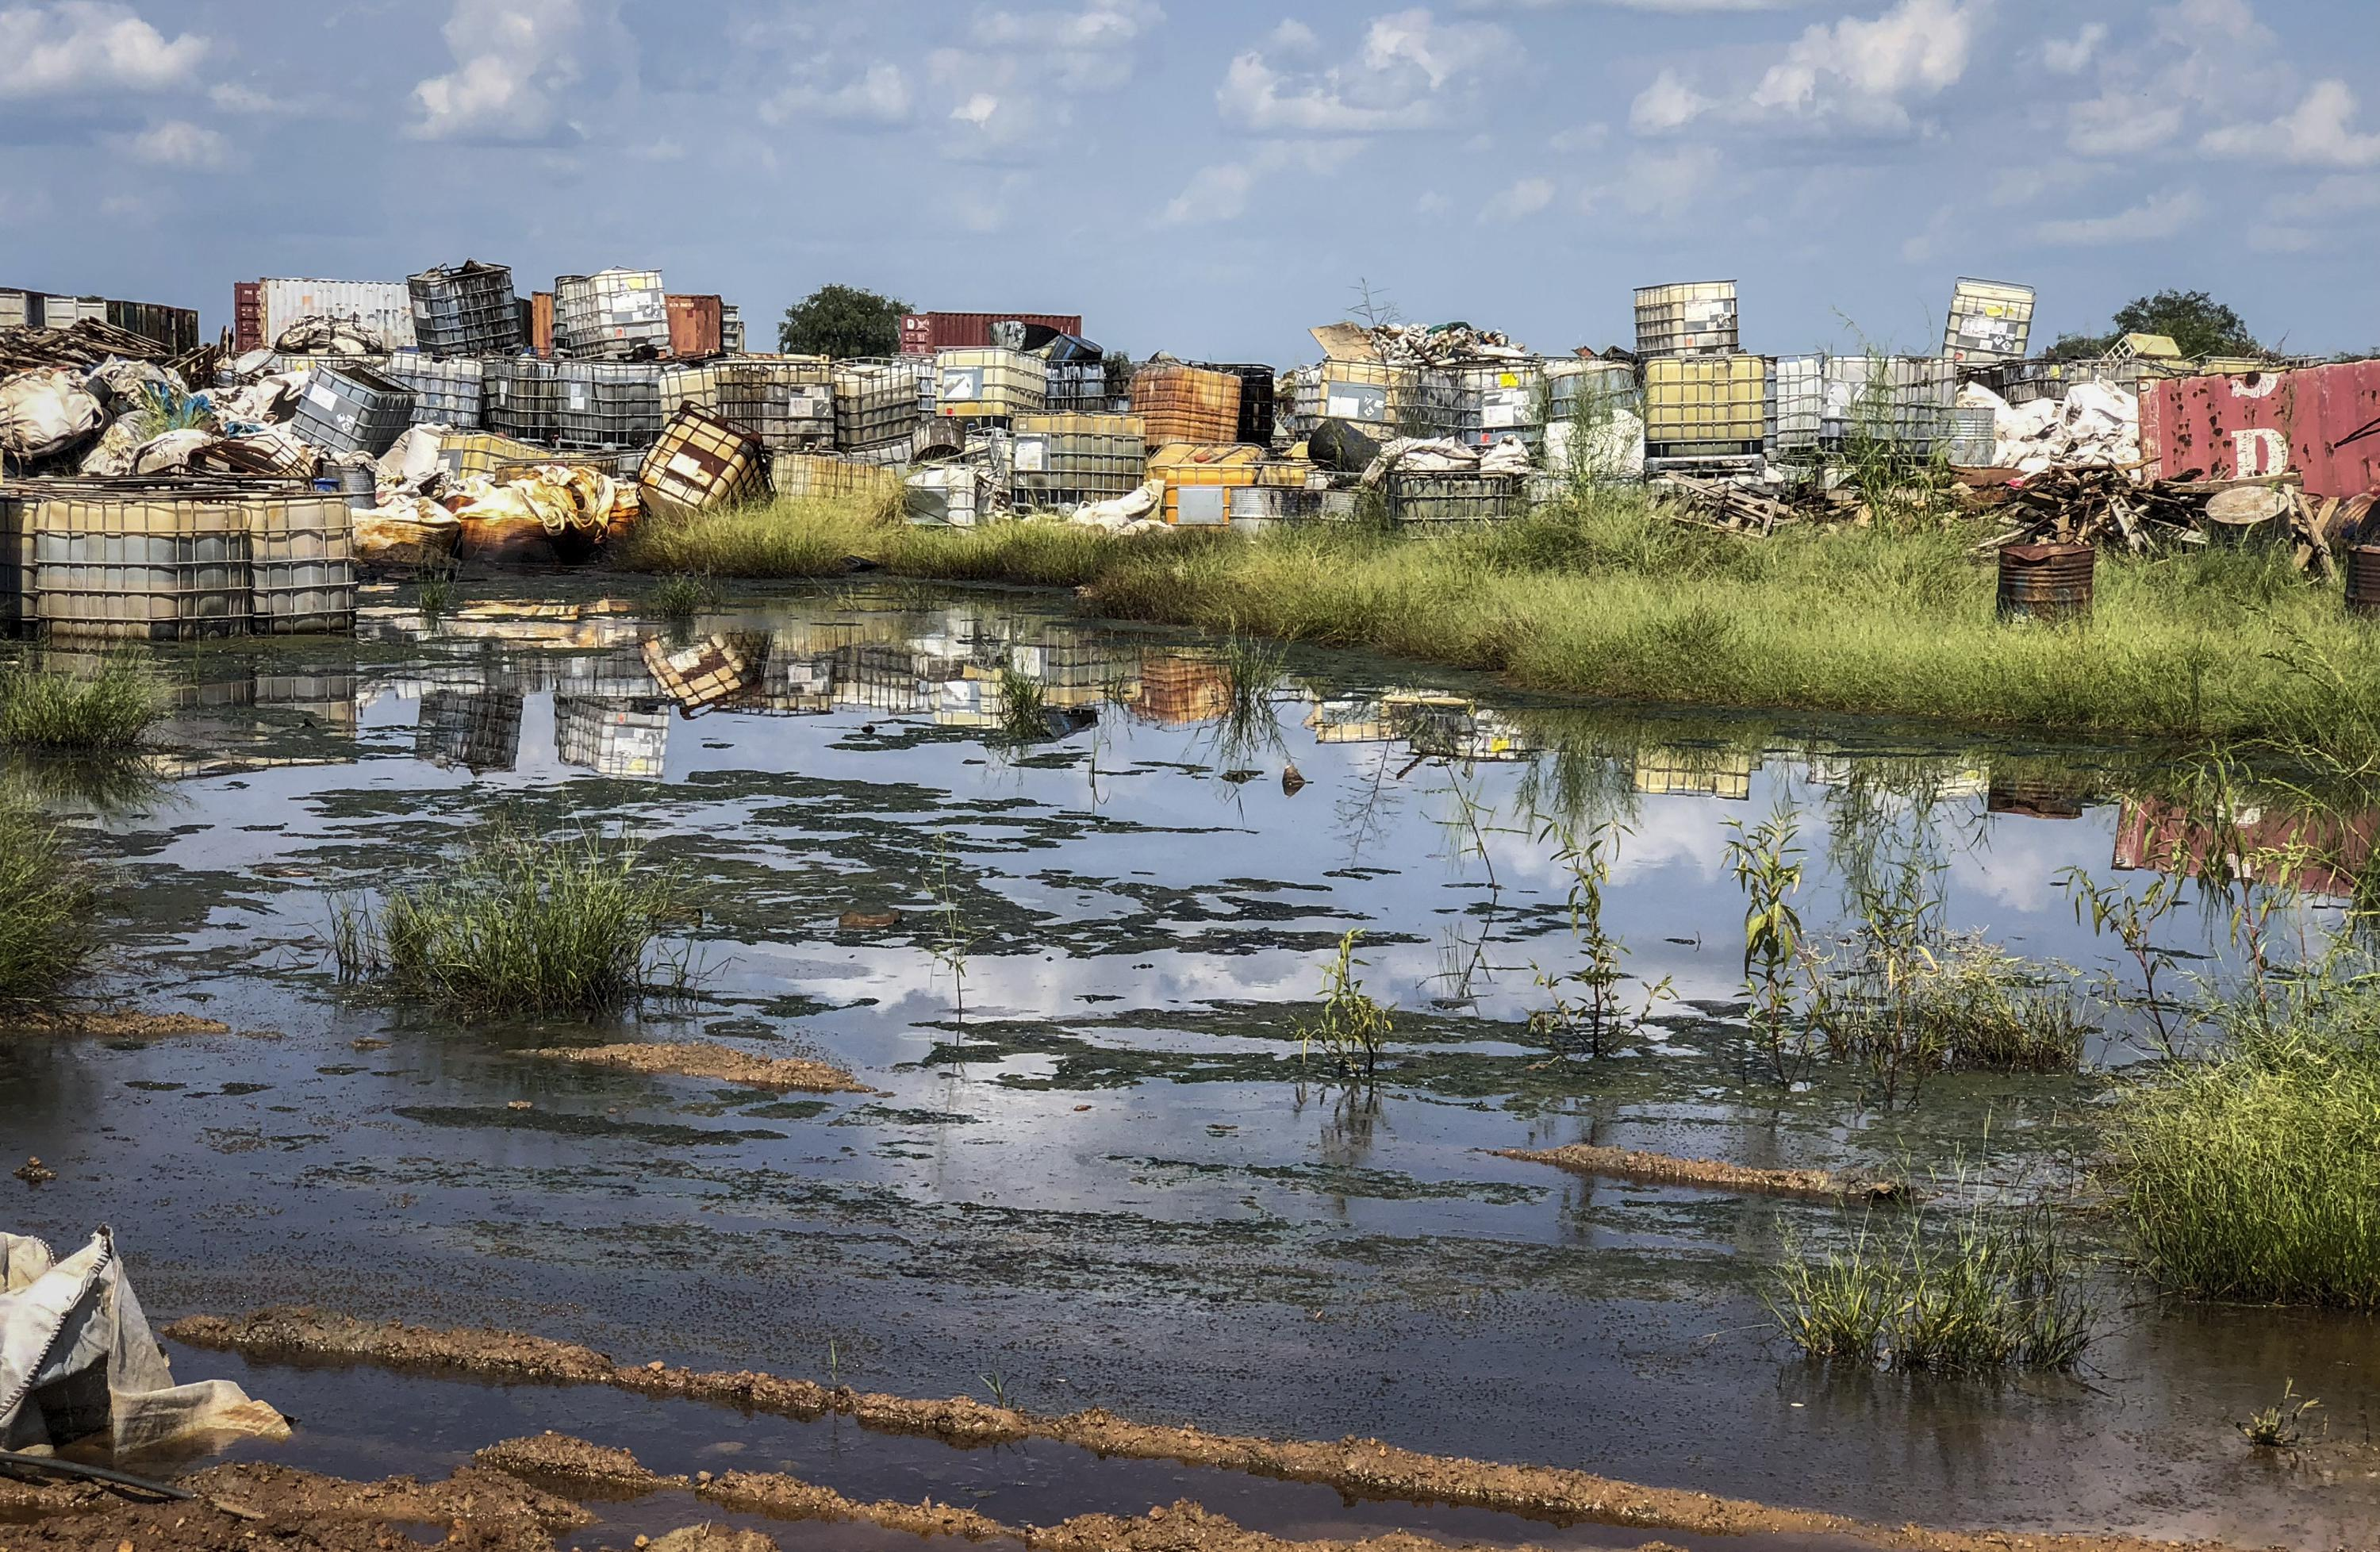 South Sudan buries reports on oil pollution, birth defects